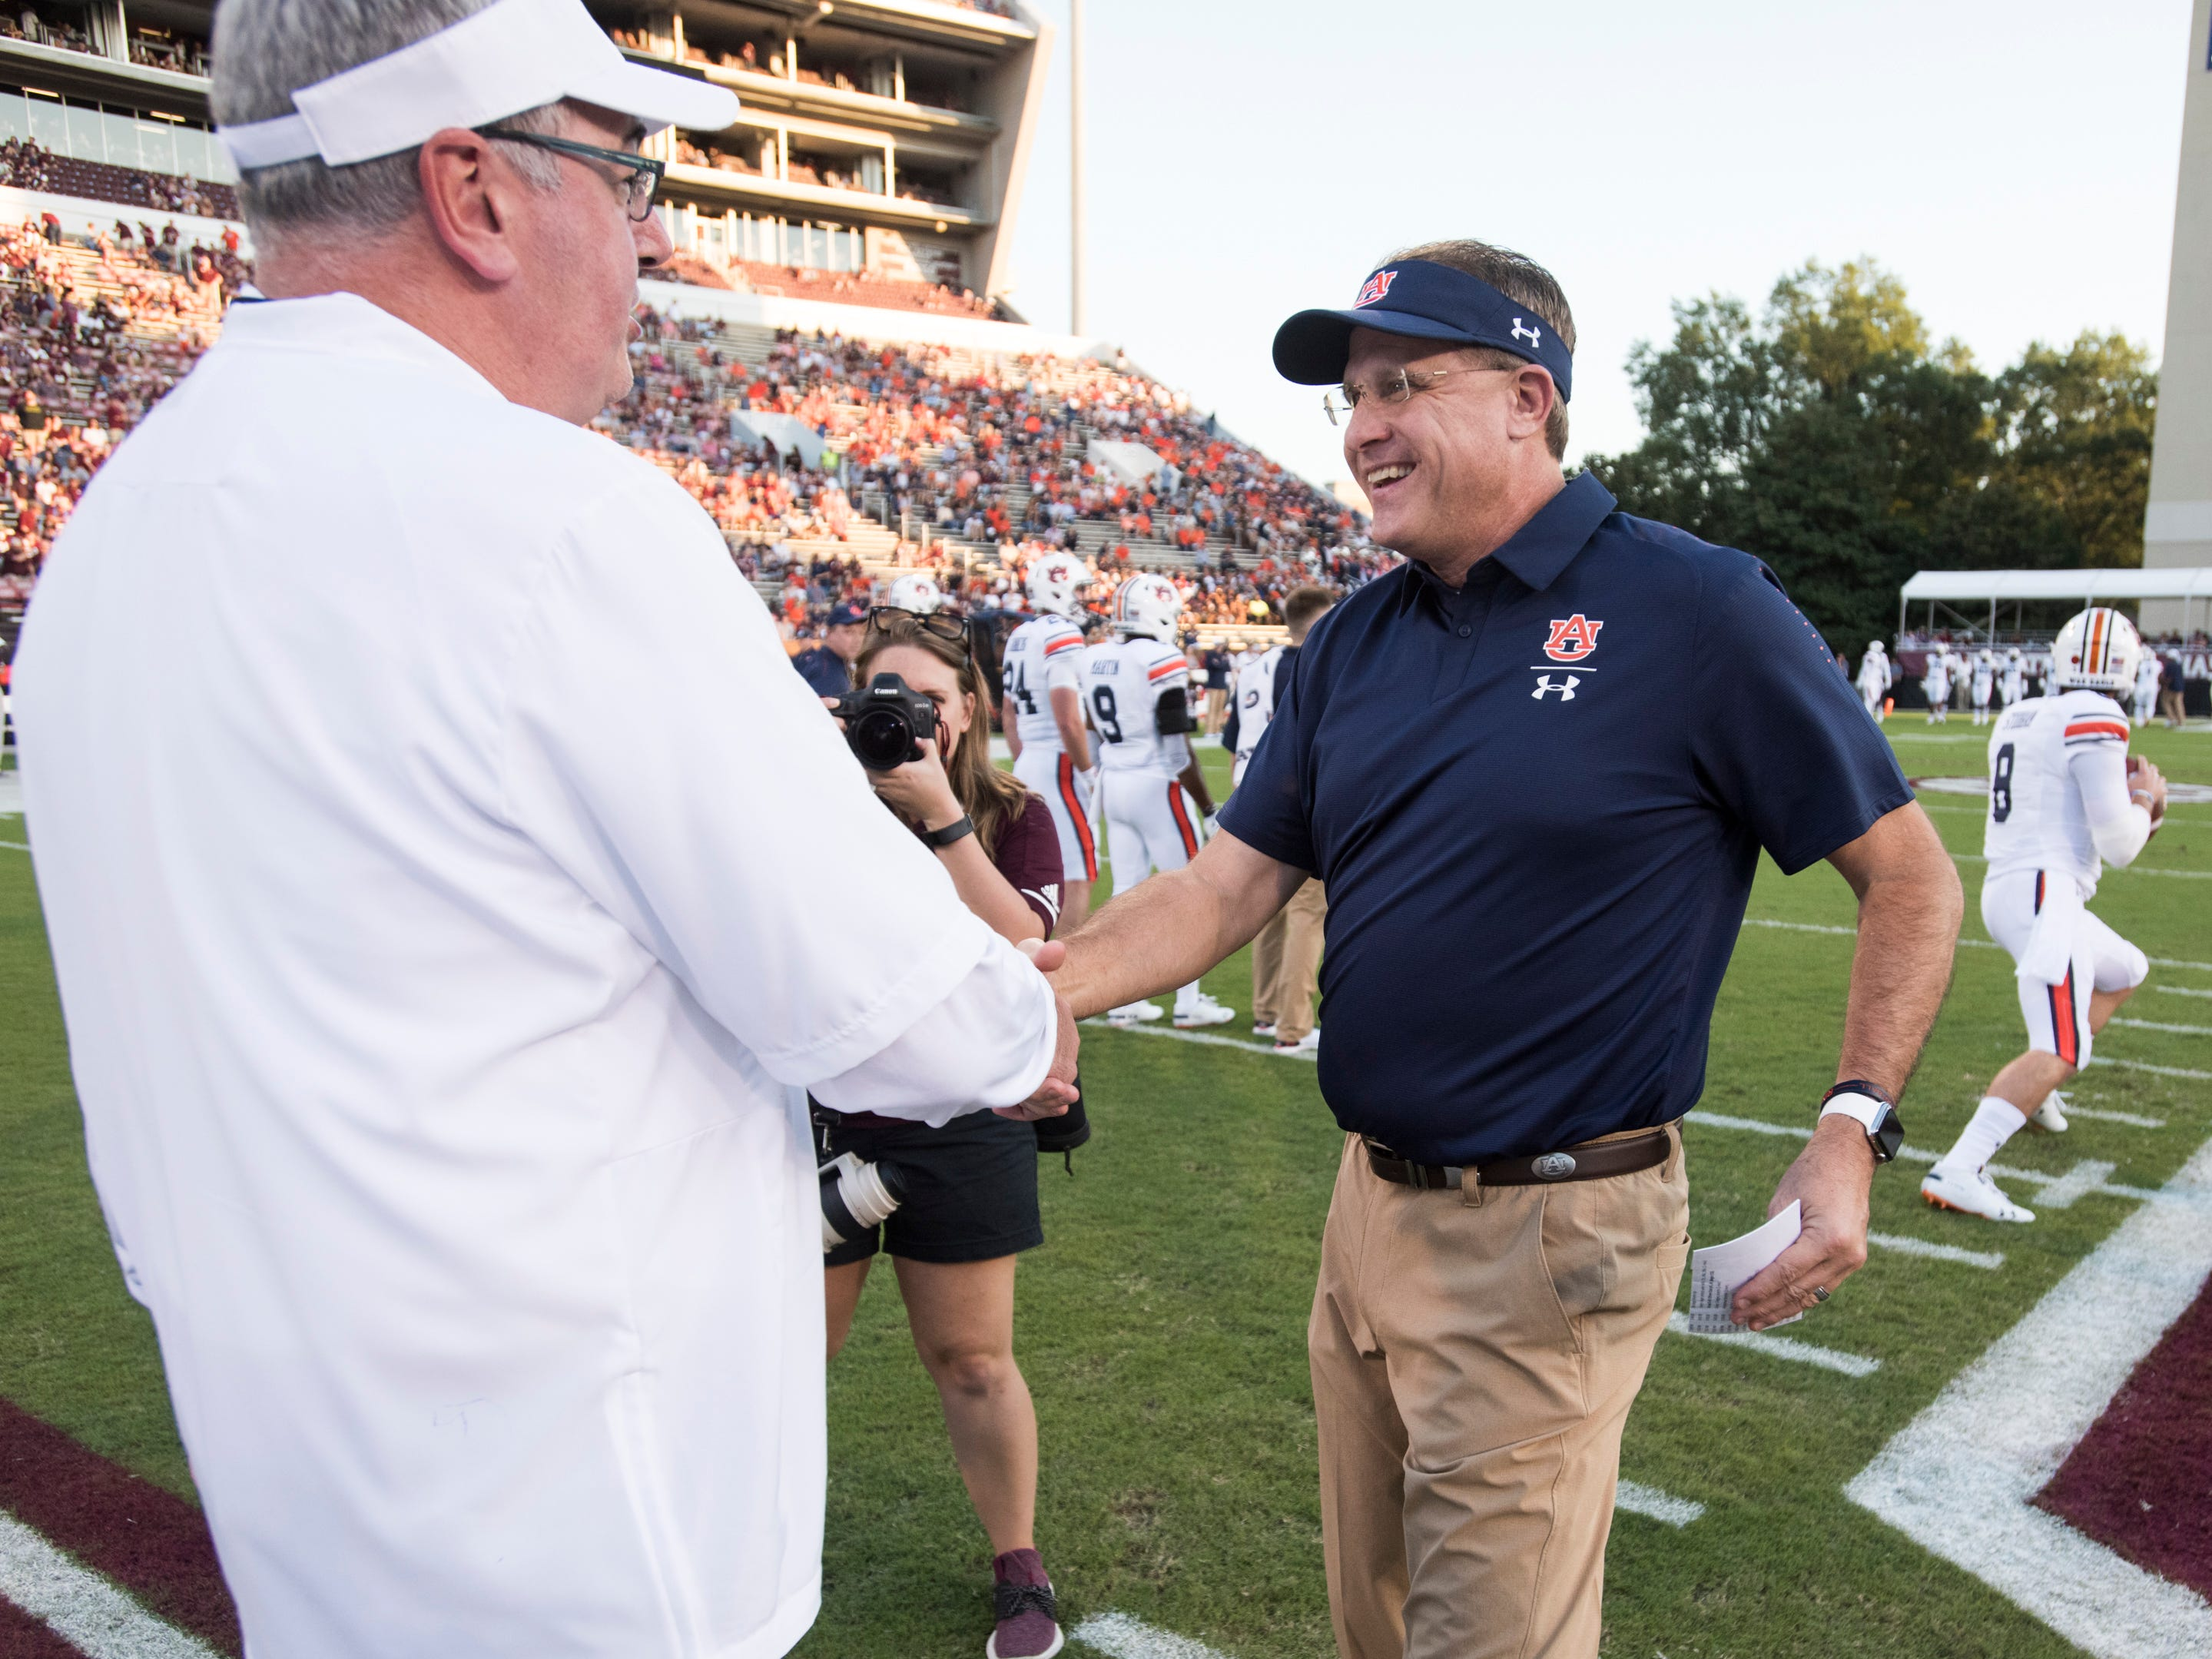 Auburn head coach Gus Malzahn shakes hands with Mississippi State head coach Joe Moorhead during warm ups at Davis Wade Stadium in Starkville, Miss., on Saturday, Oct. 6, 2018.